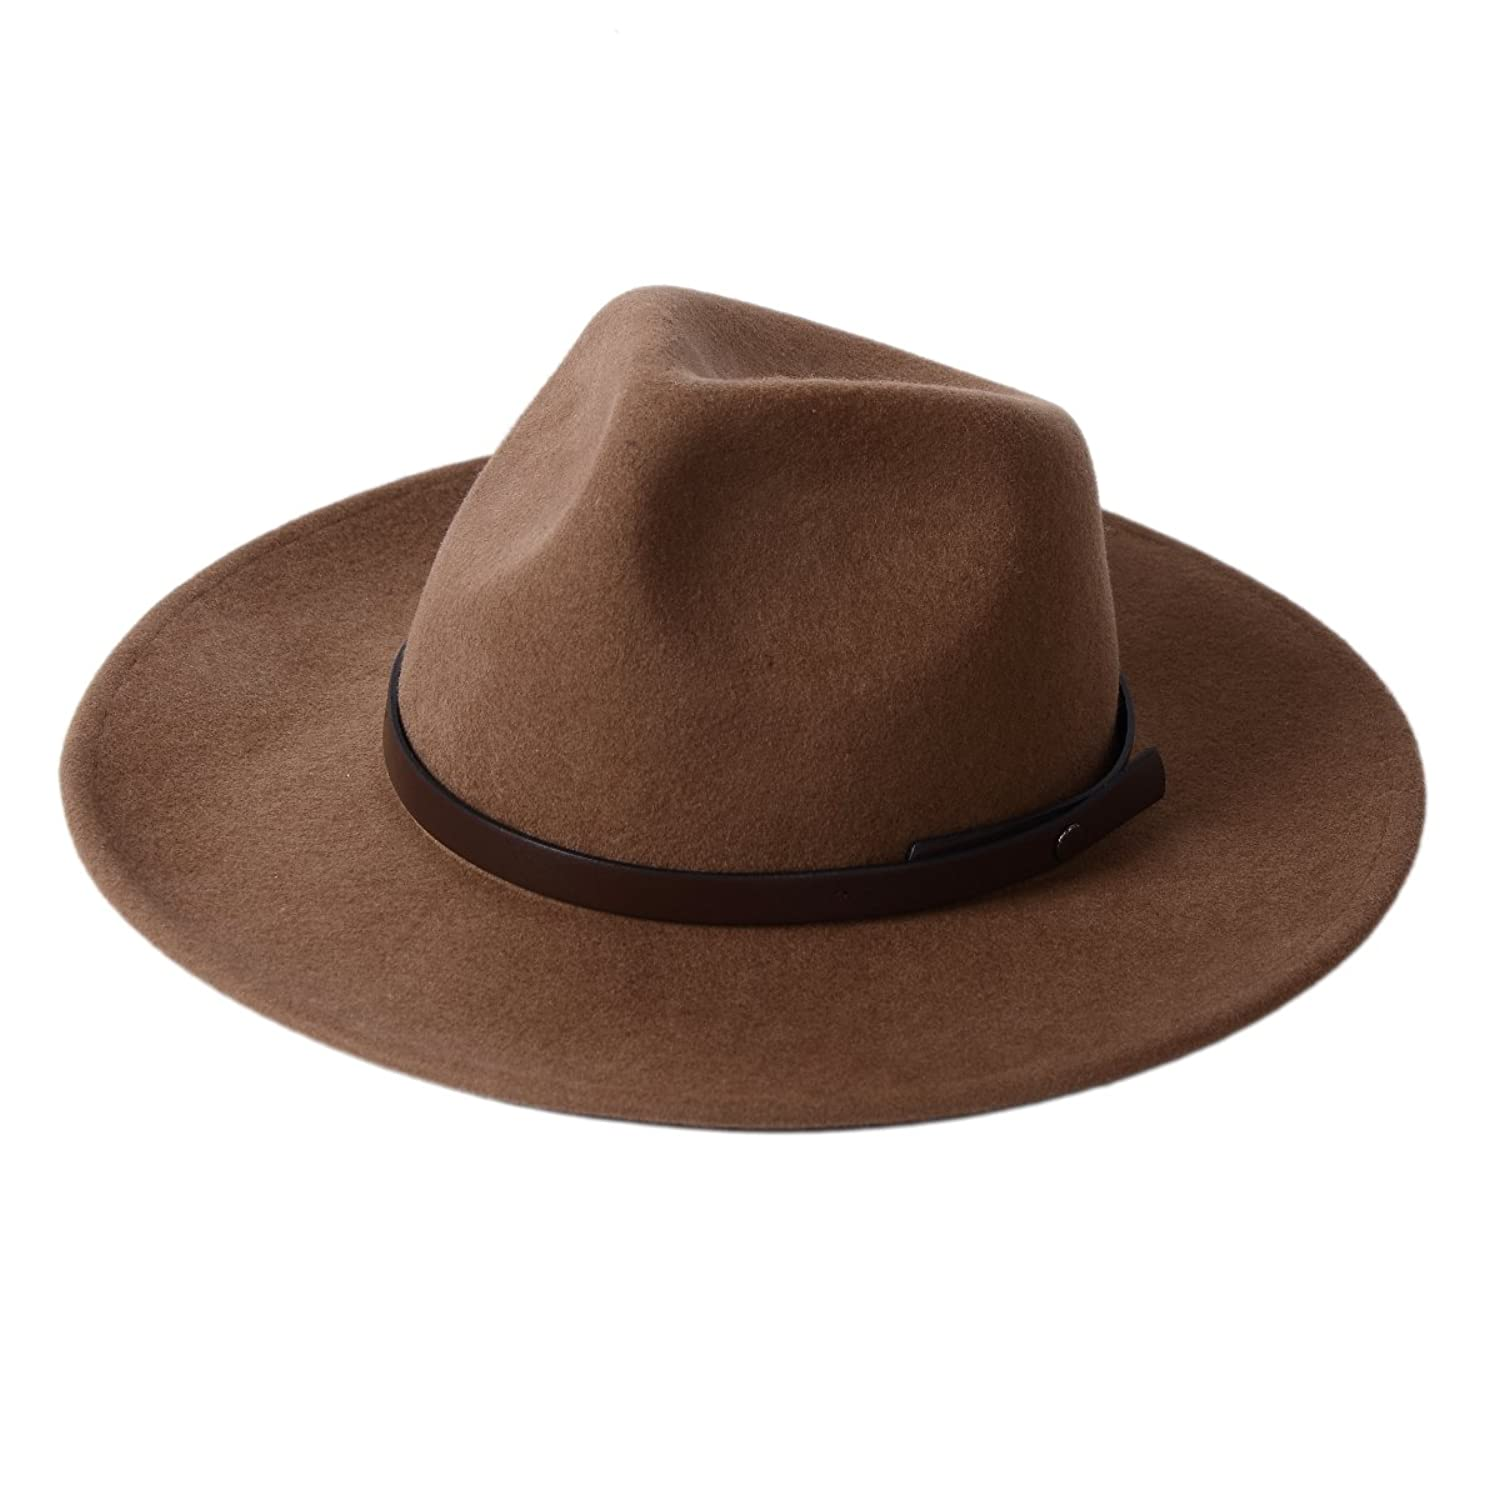 b5fab43b Western Cowboy Hat-Wool Fedora Felt Hats Men Women Crushable Wide Brim  Trilby Father's Day